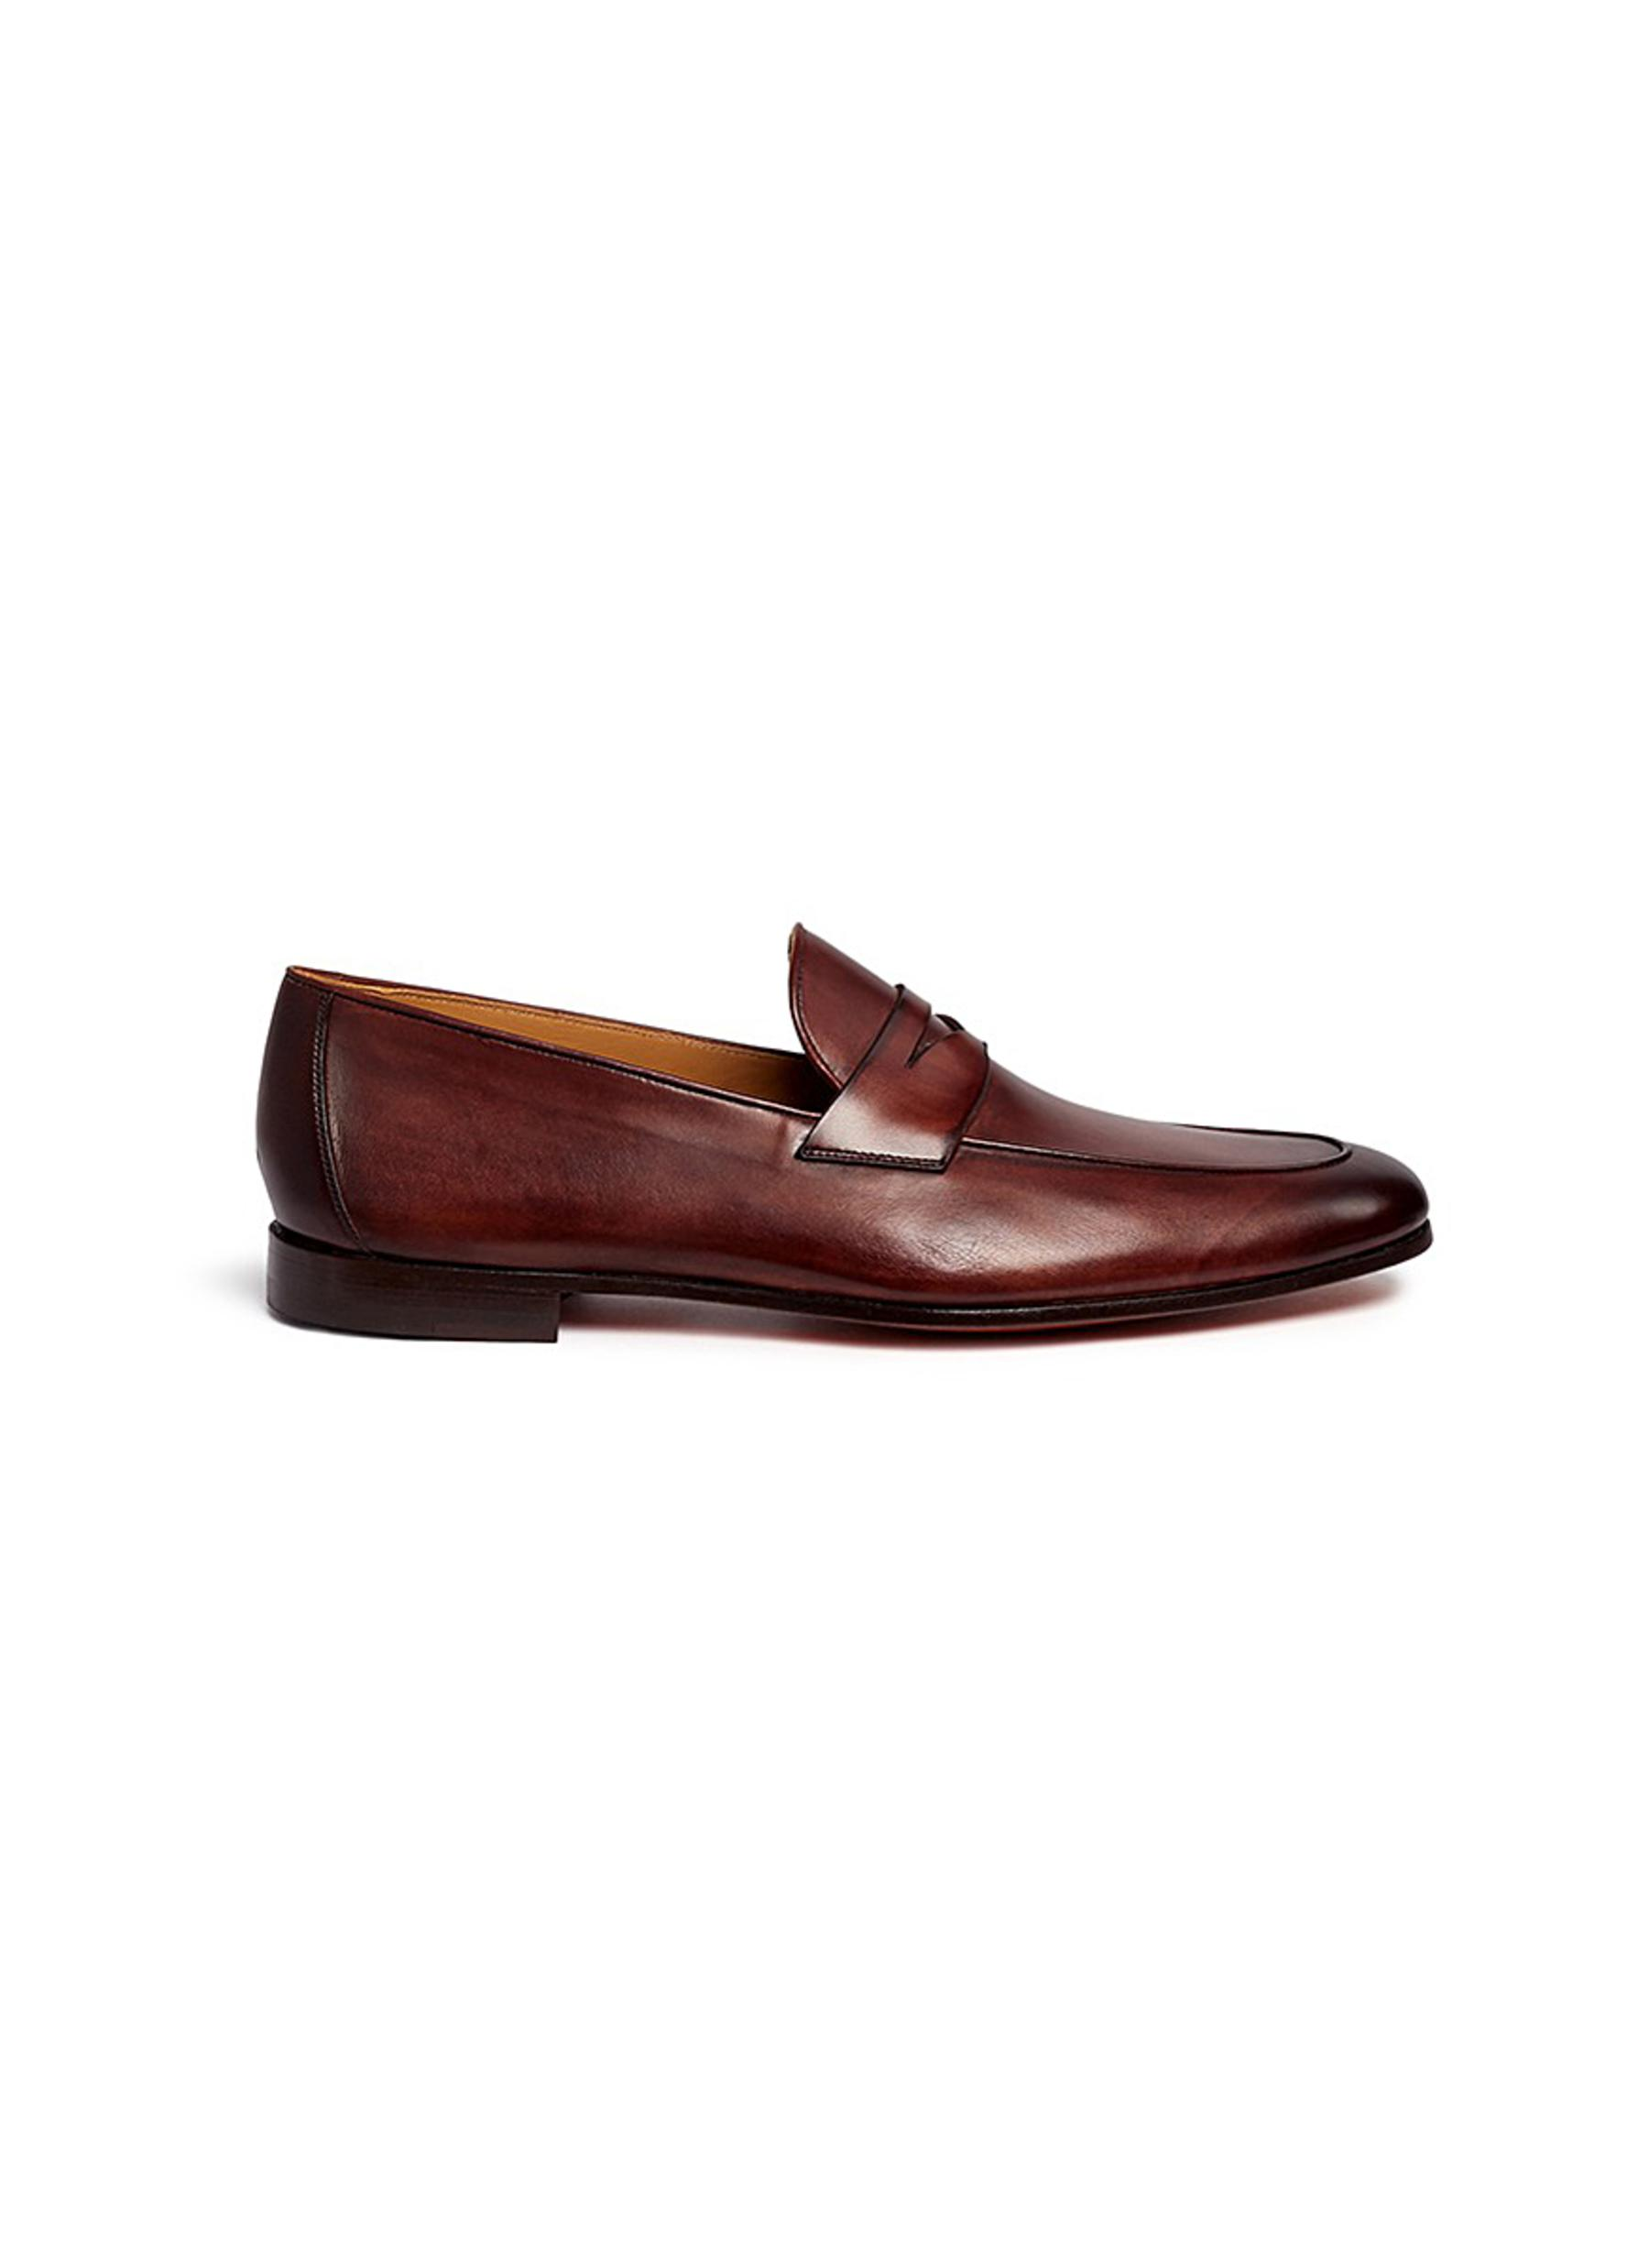 Leather penny loafers by Magnanni